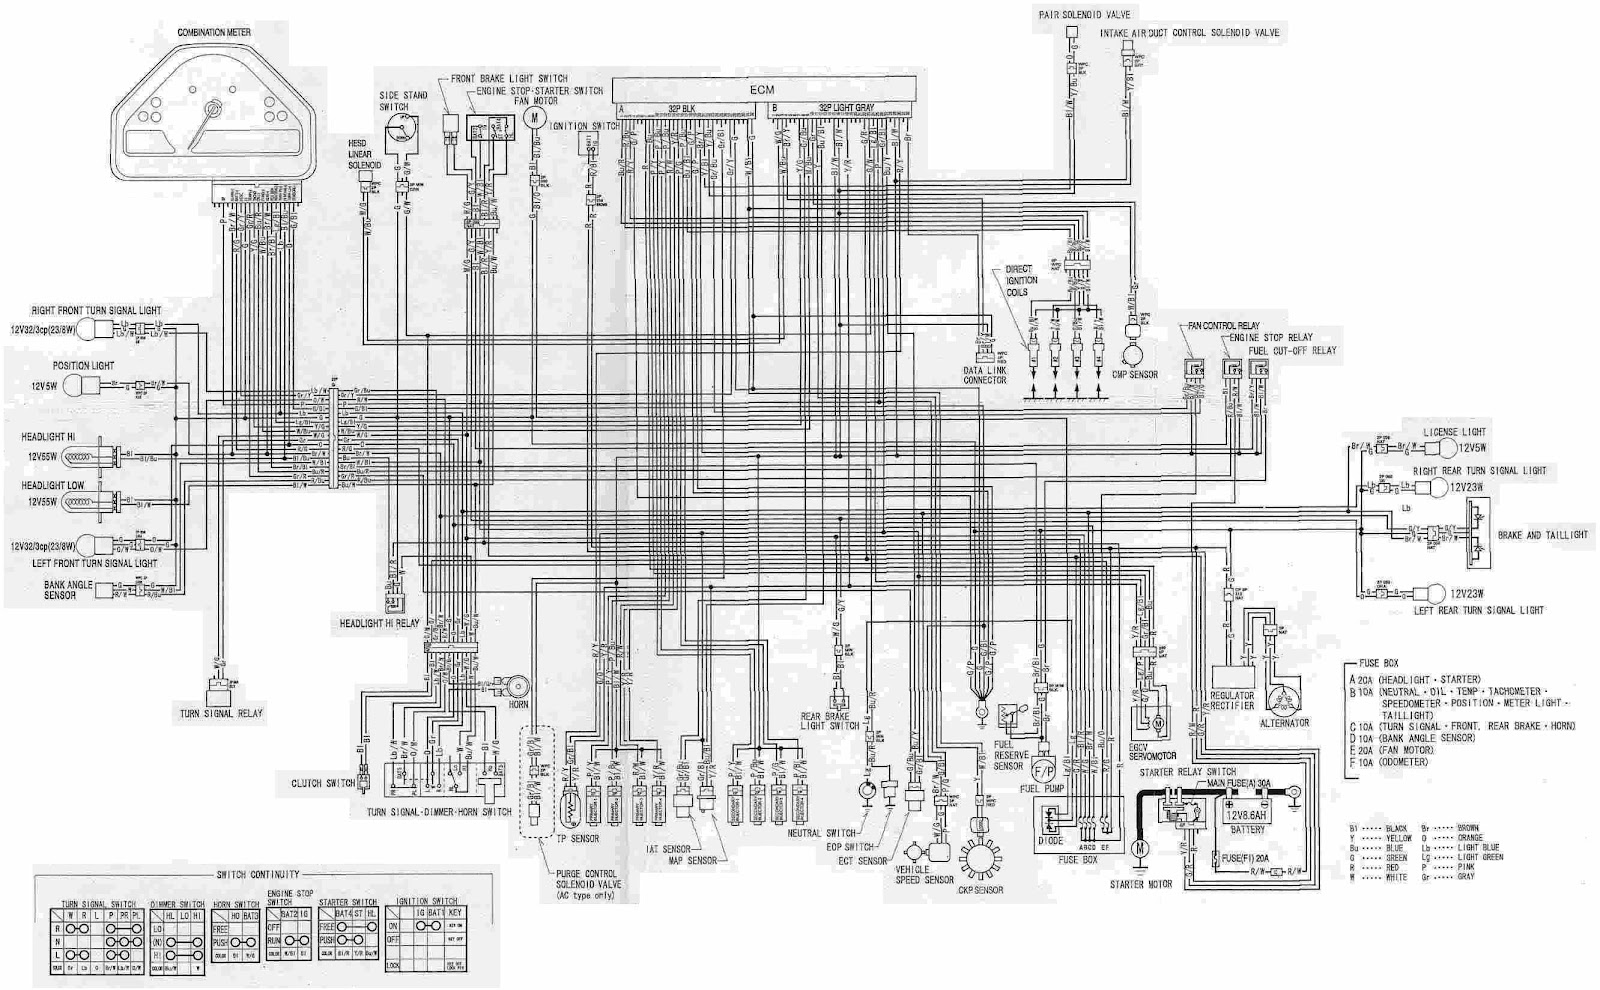 Wiring Diagram Honda Scooter : J cc motorcycle wiring diagram free engine image for